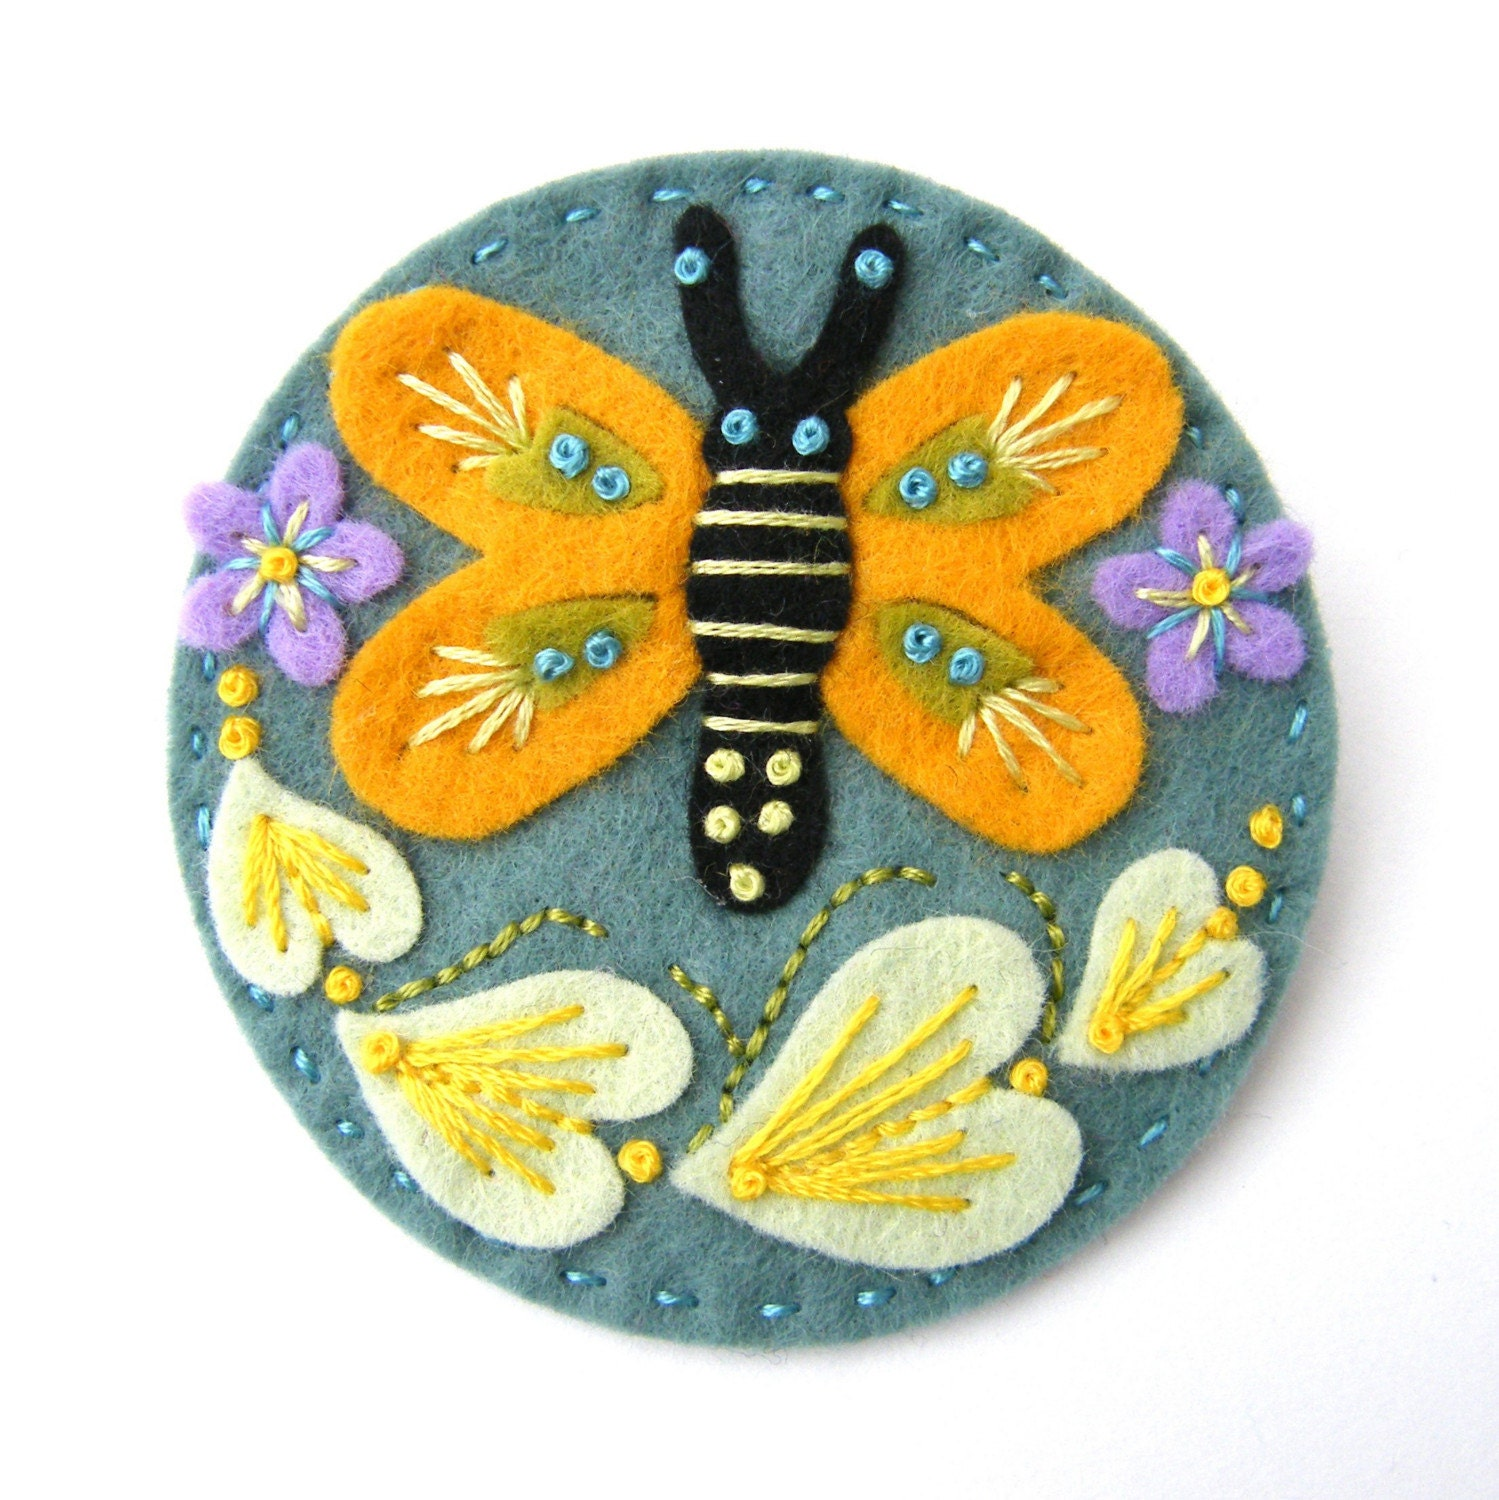 BUTTERFLY FELT BROOCH WITH FREEFORM EMBROIDERY